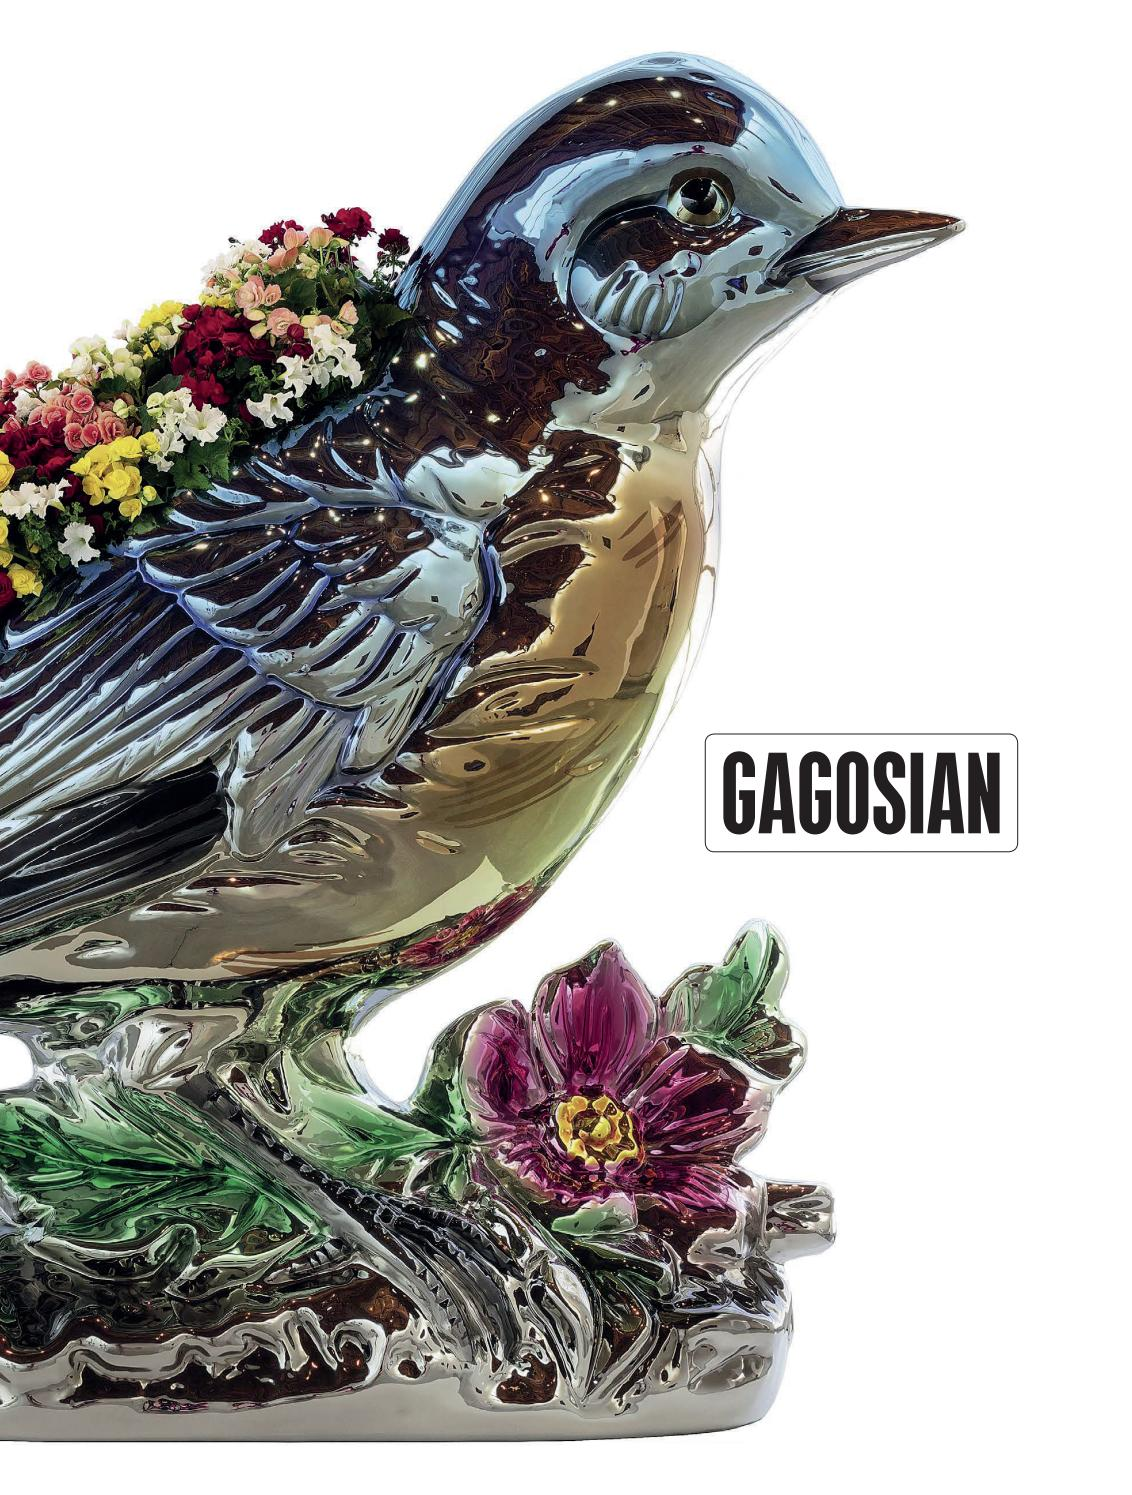 Gagosian Quarterly Winter 2017 By Gagosian Quarterly Issuu